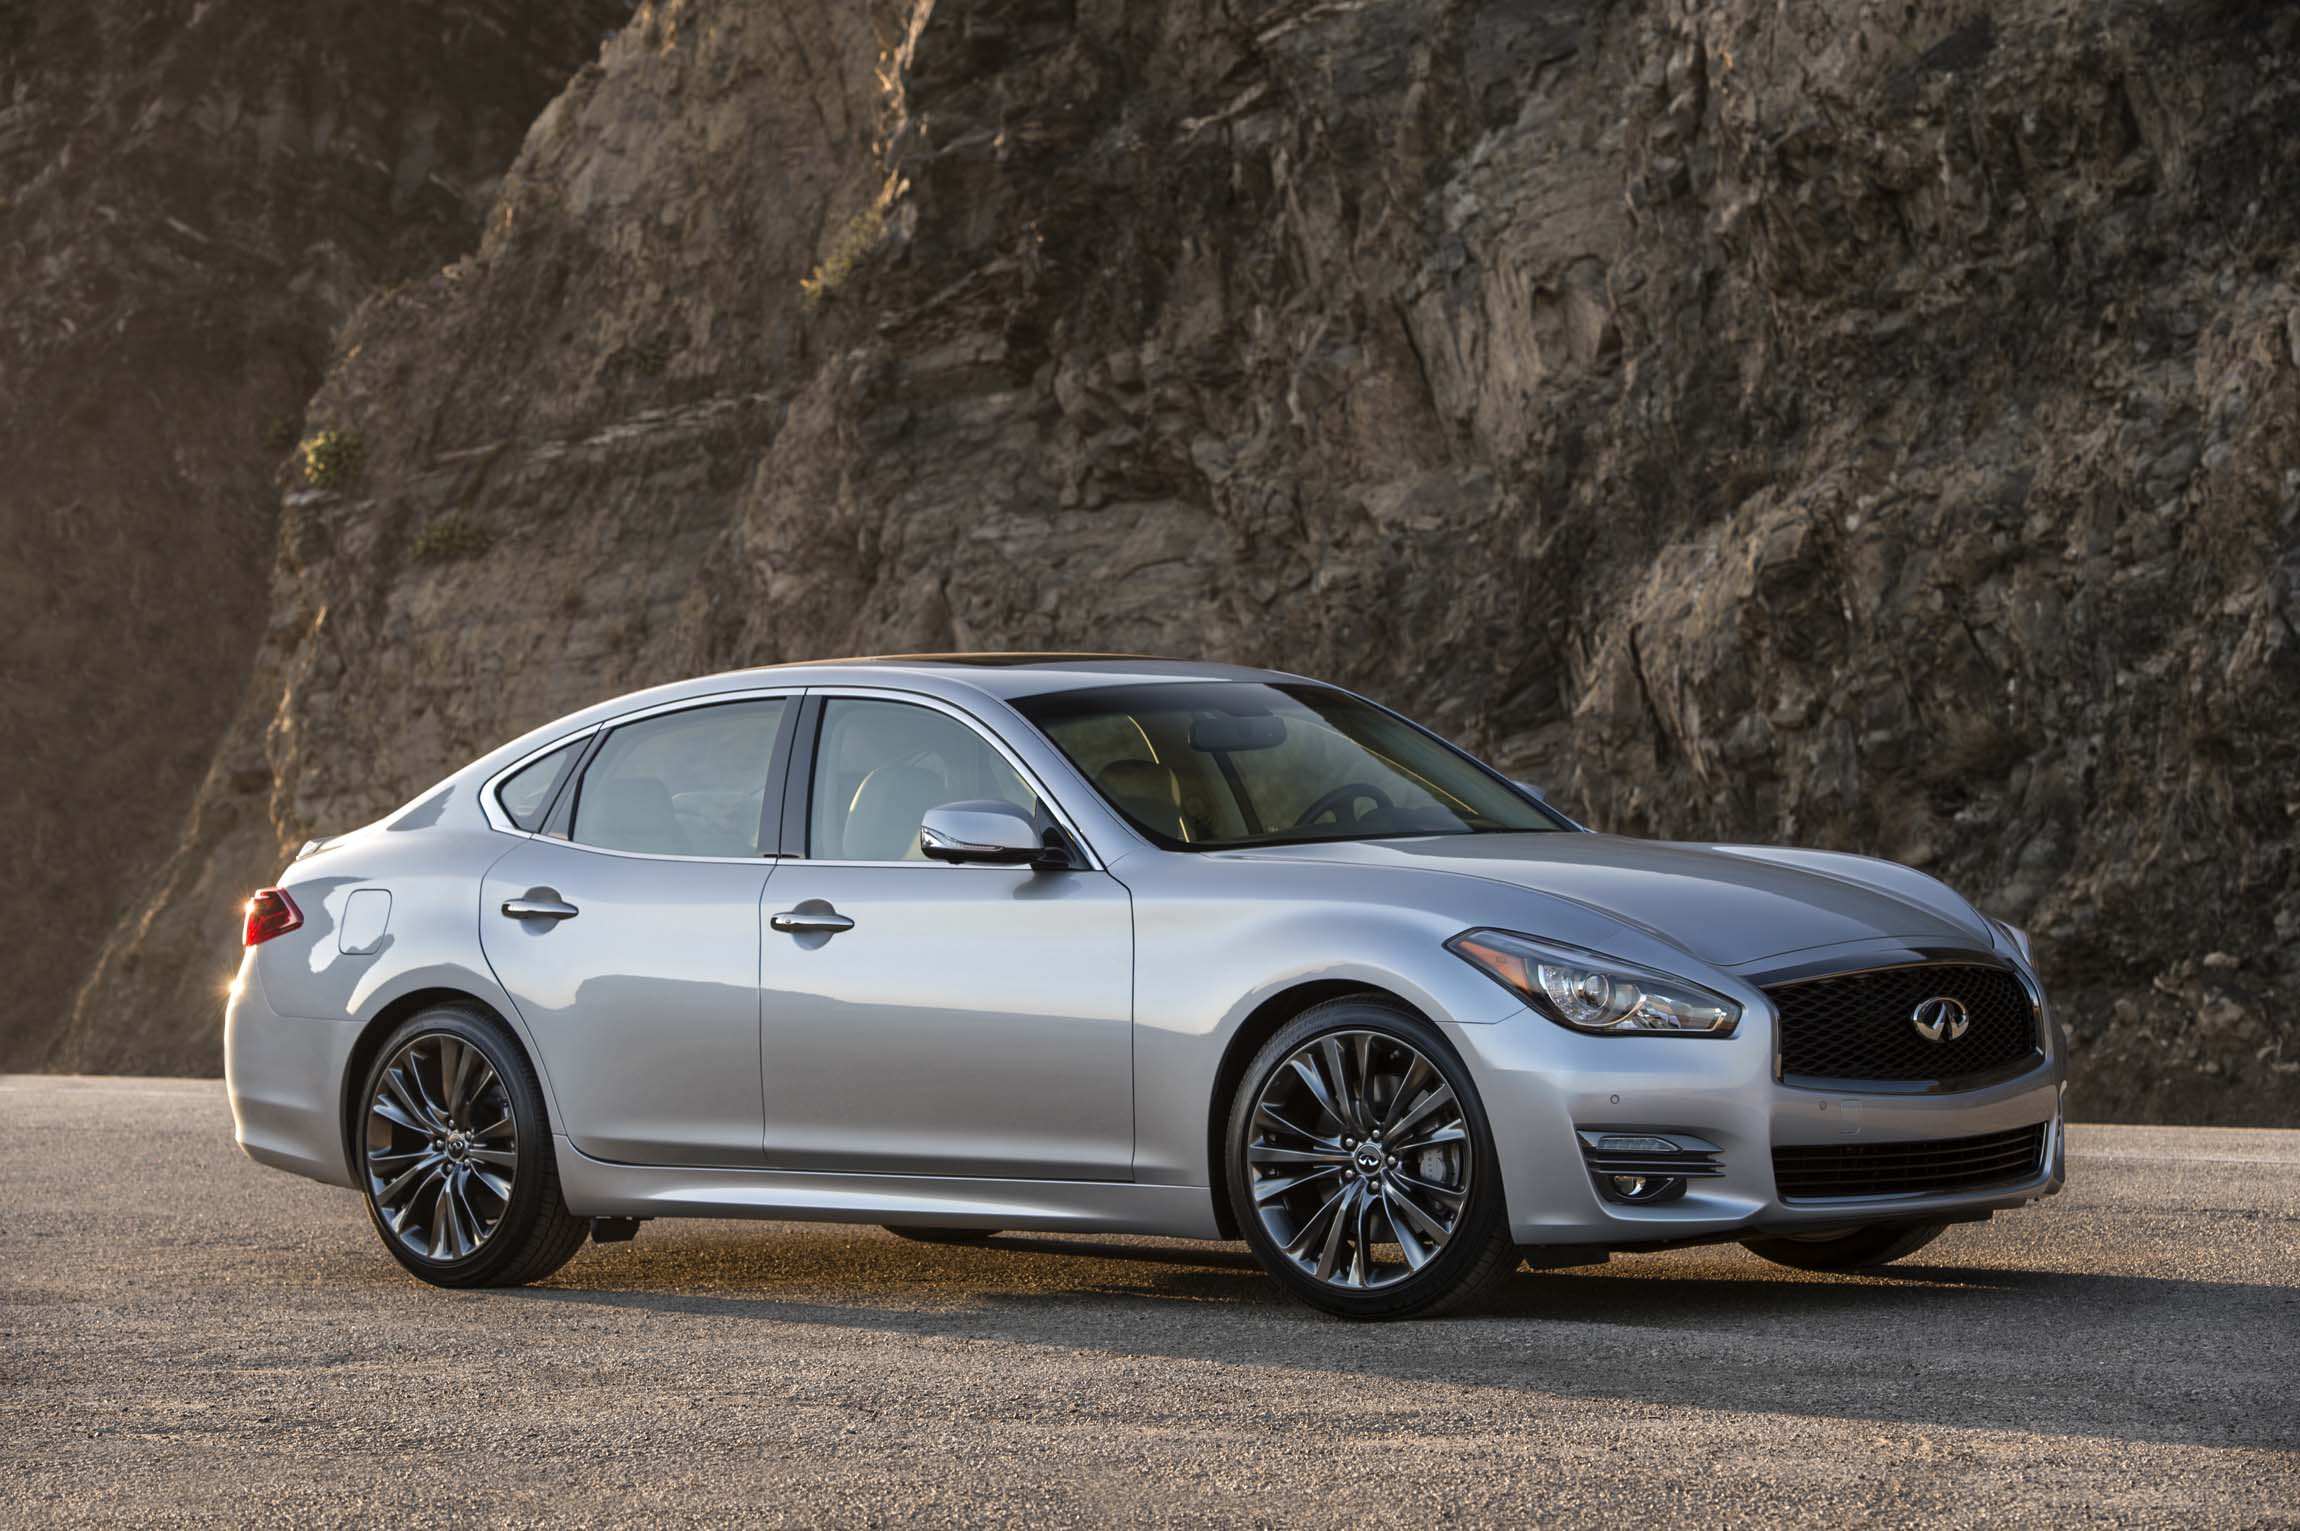 2019 Infiniti Q70 Review Ratings Specs Prices And Photos